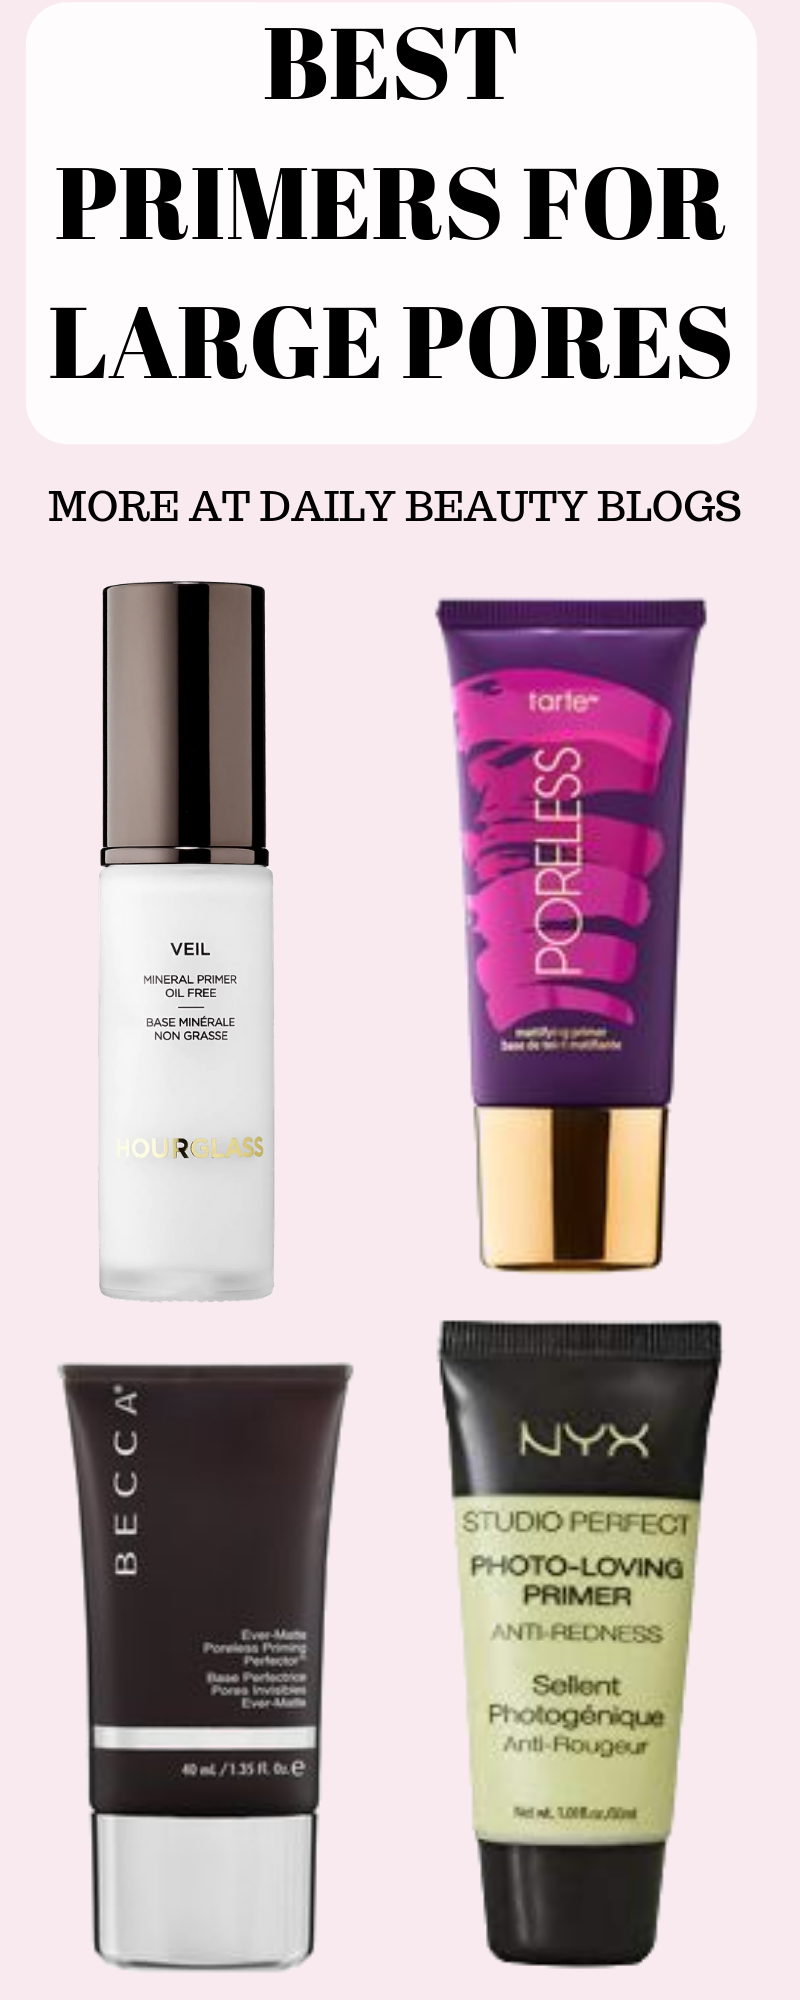 These 4 primers are just the tip of the iceberg when it